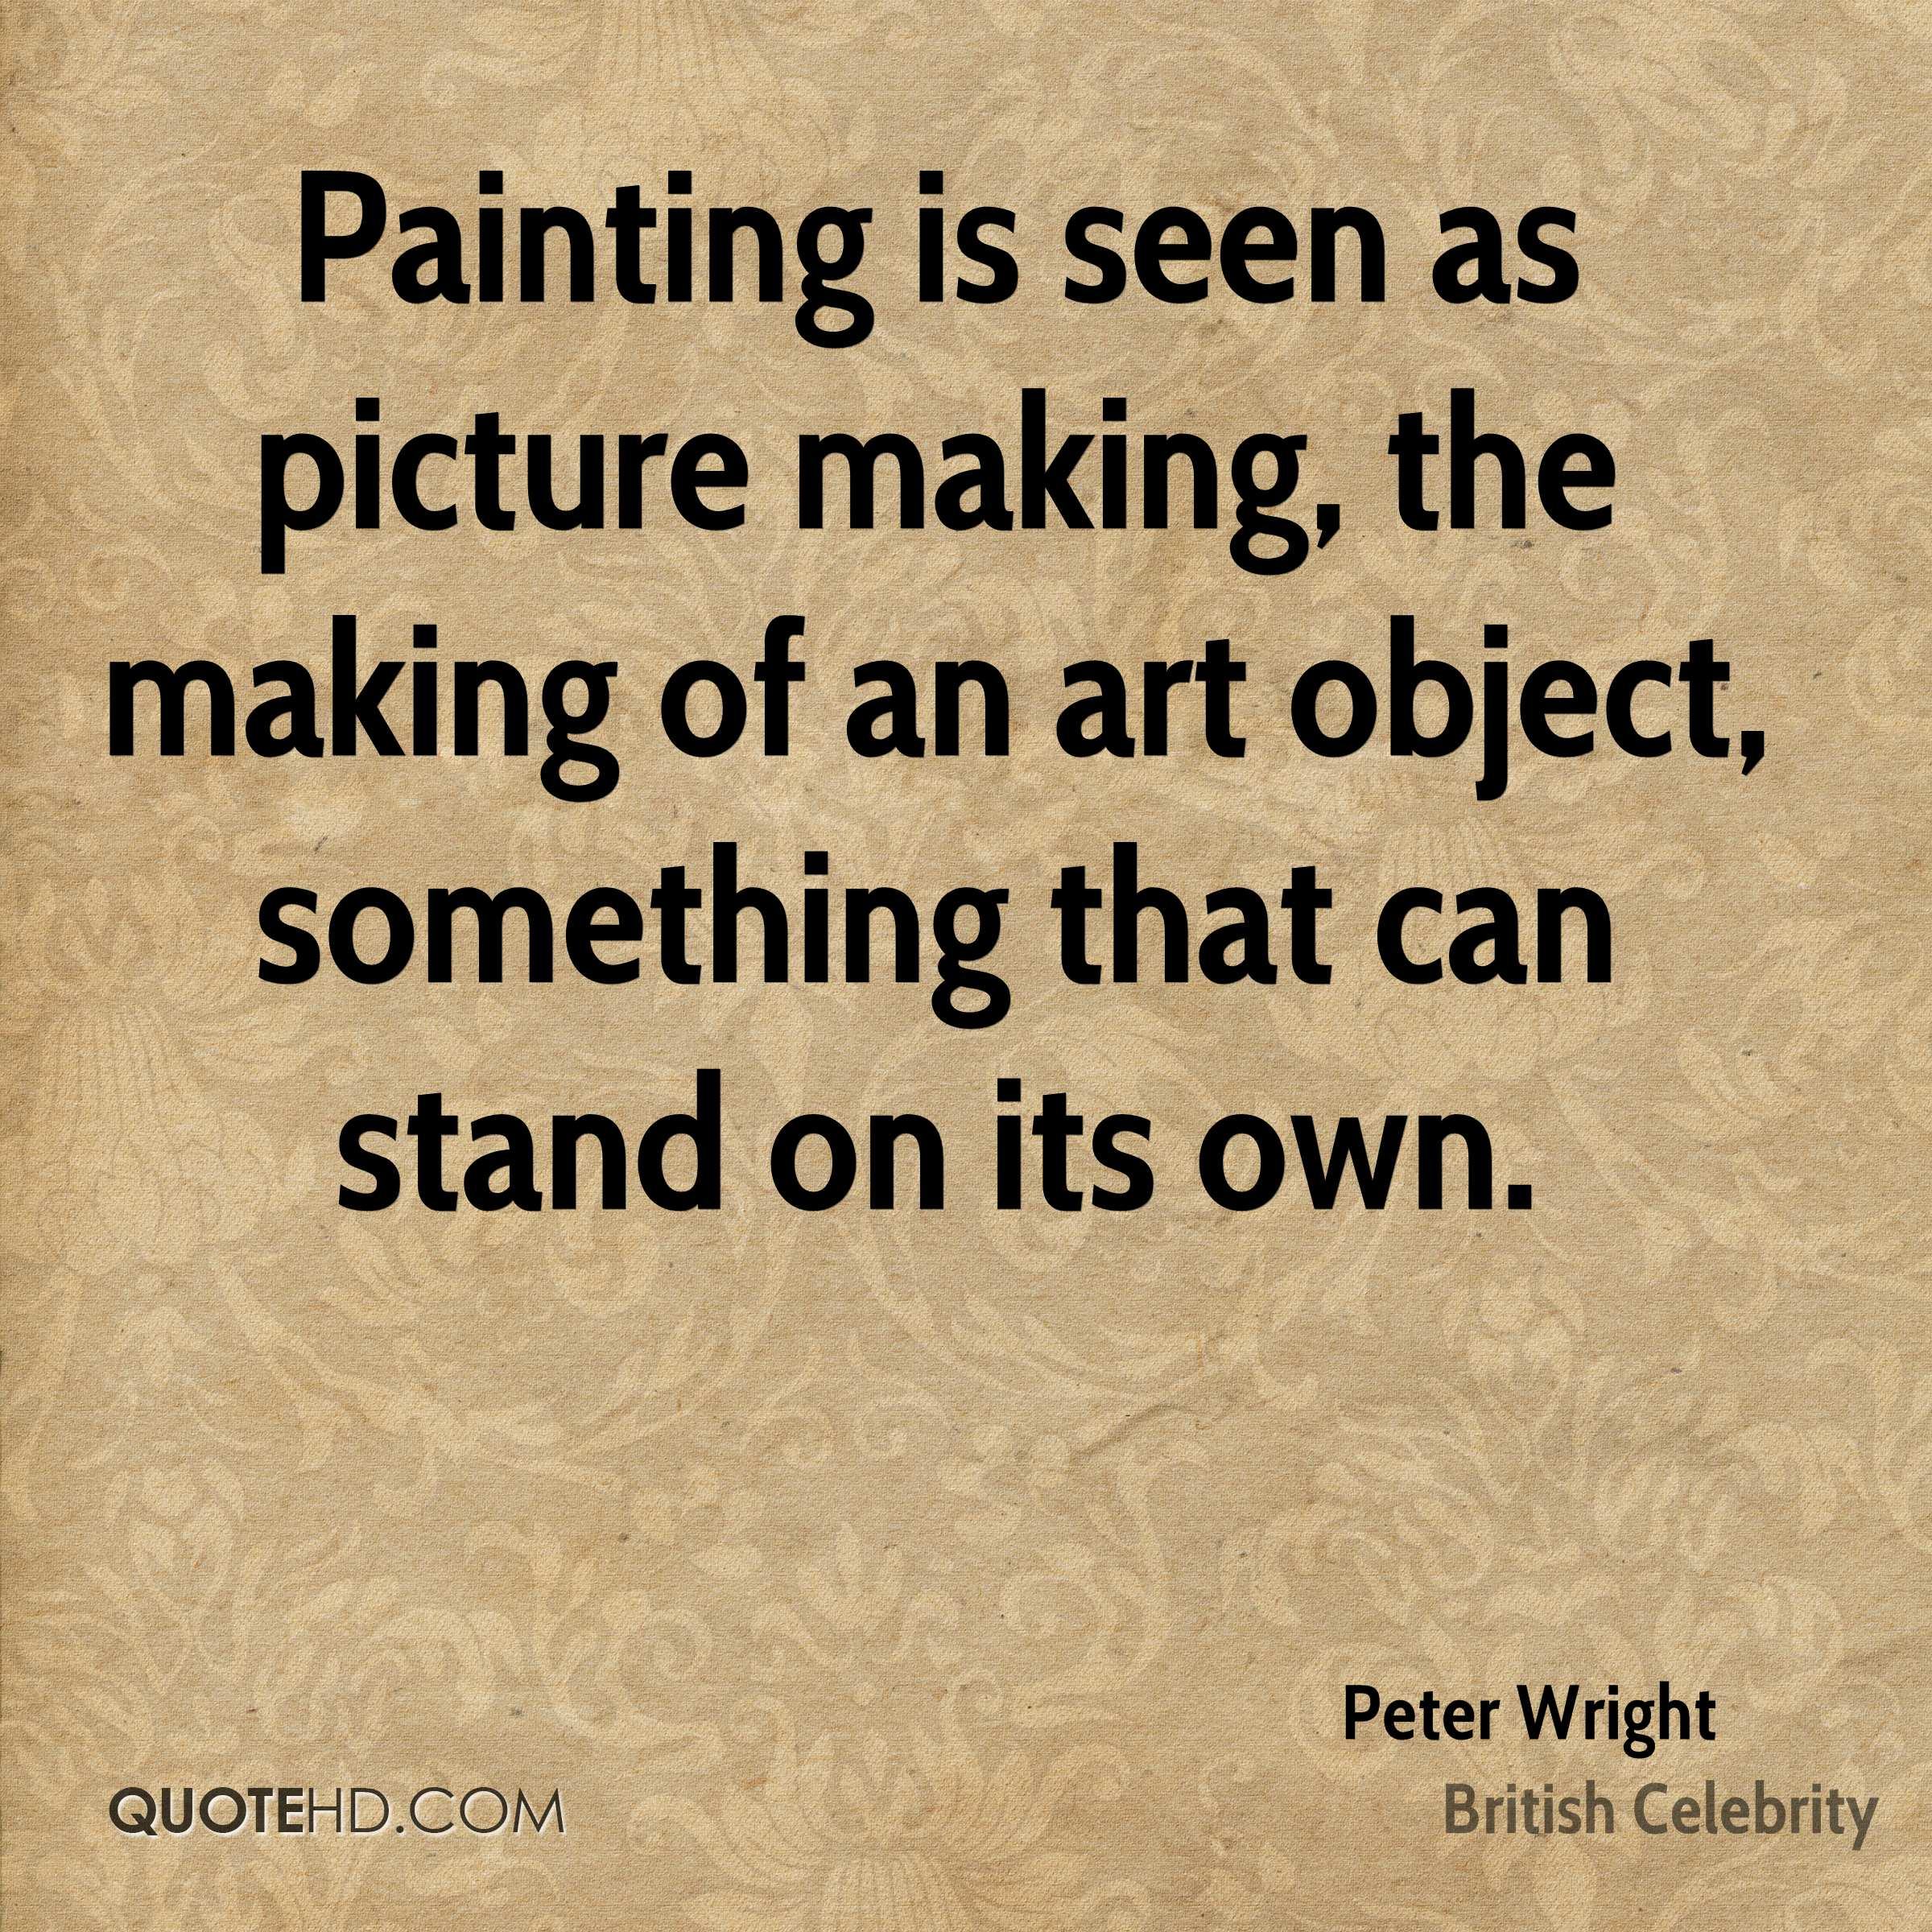 Painting is seen as picture making, the making of an art object, something that can stand on its own.